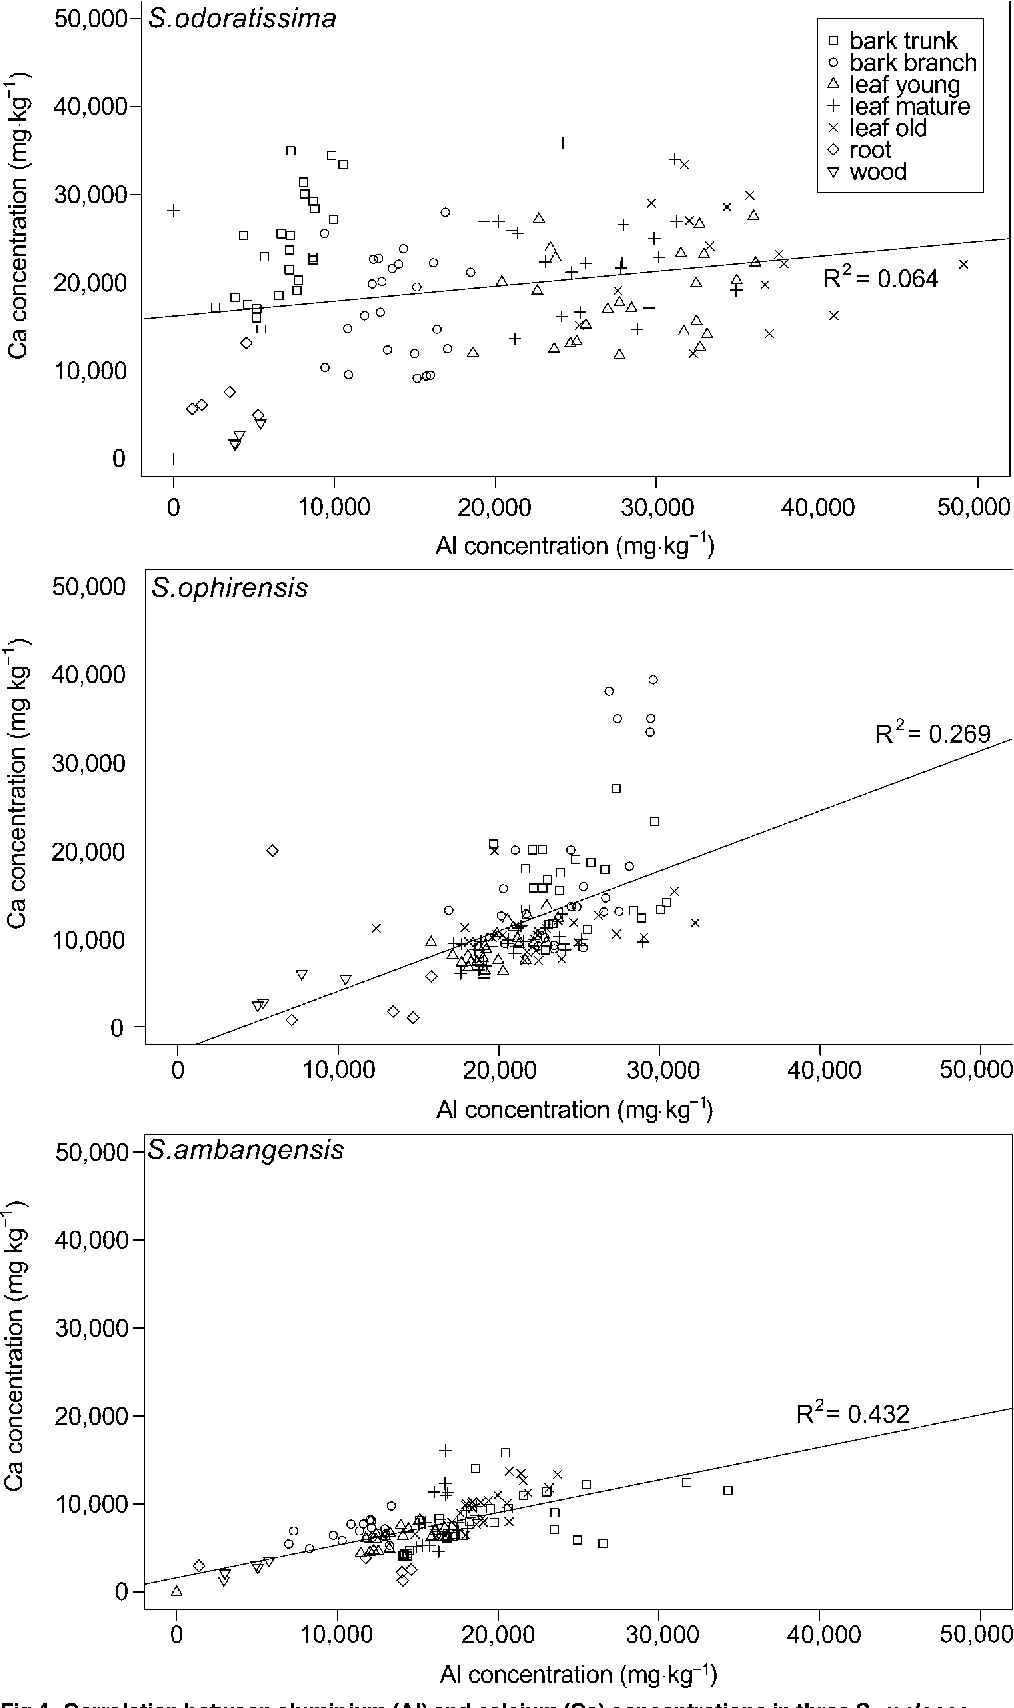 Fig 4. Correlation between aluminium (Al) and calcium (Ca) concentrations in three Symplocos species from Central Sulawesi. Five trees were sampled for each species. Different symbols represent